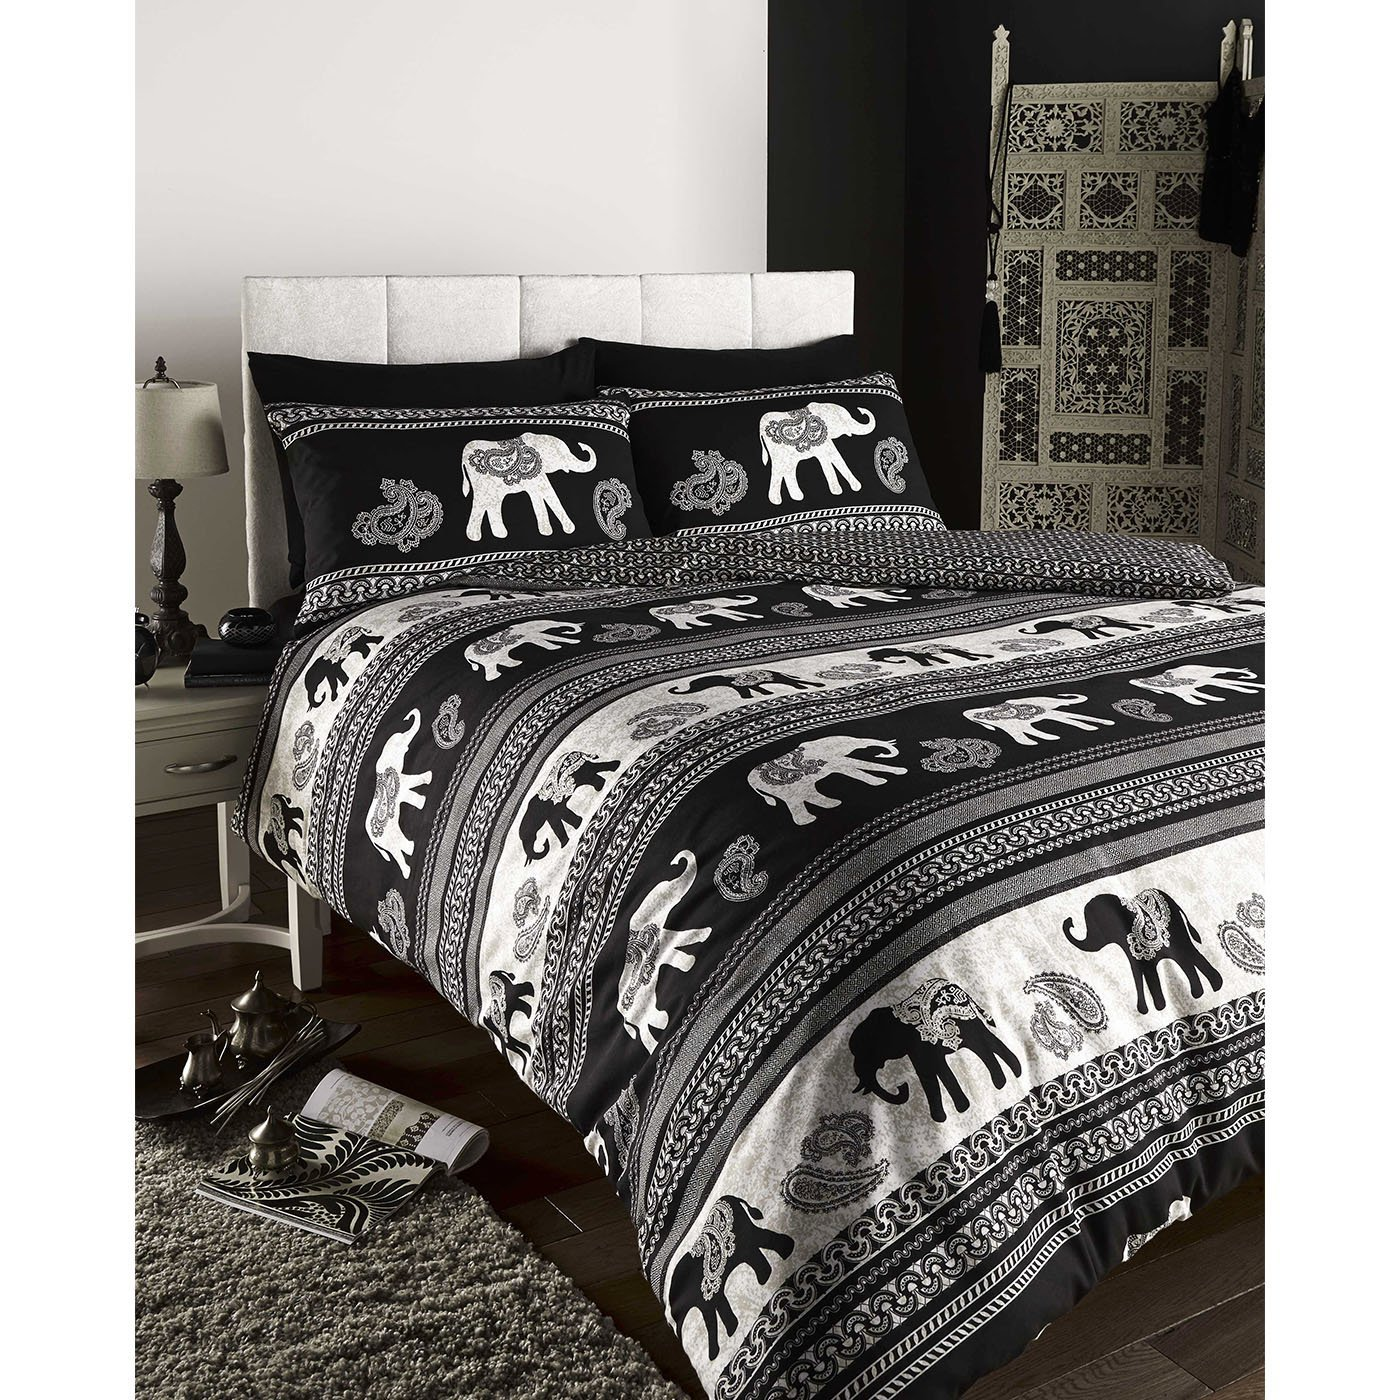 DE CAMA Empire Indian Elephant Animal Duvet Quilt Cover Bedding Set